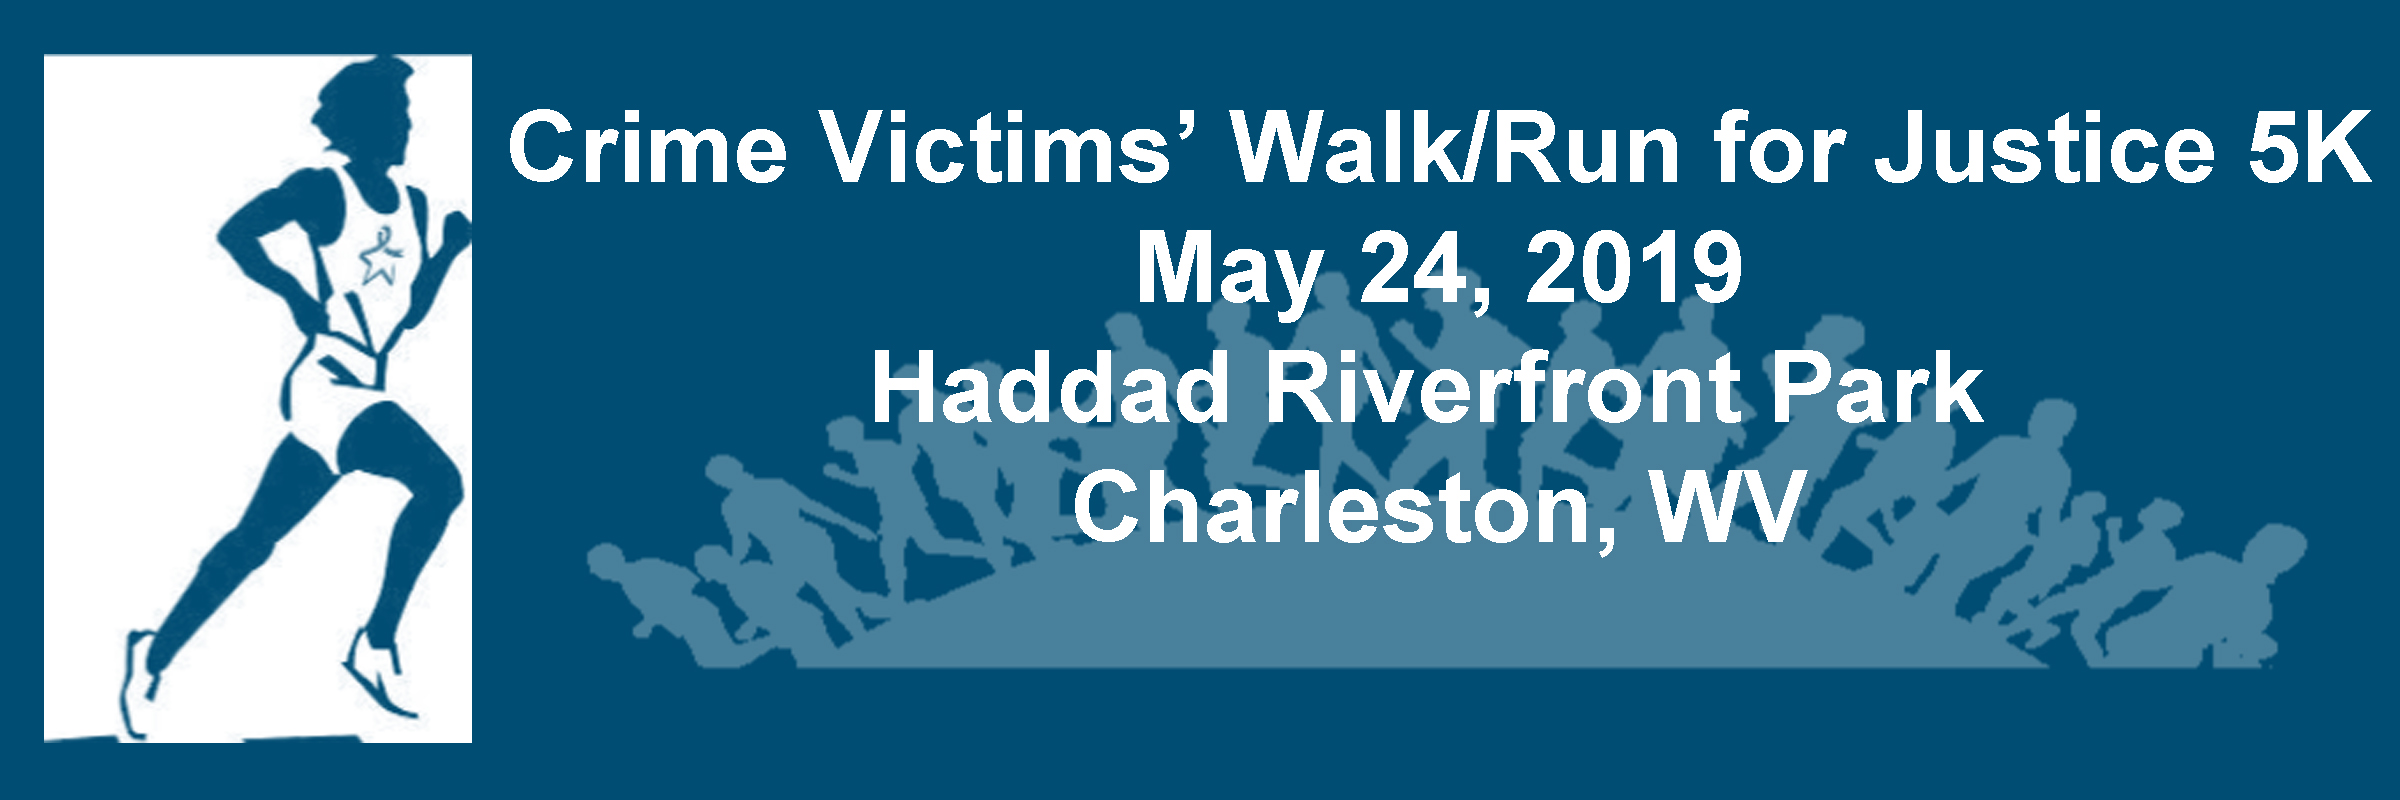 Walk/Run for Justice 5K